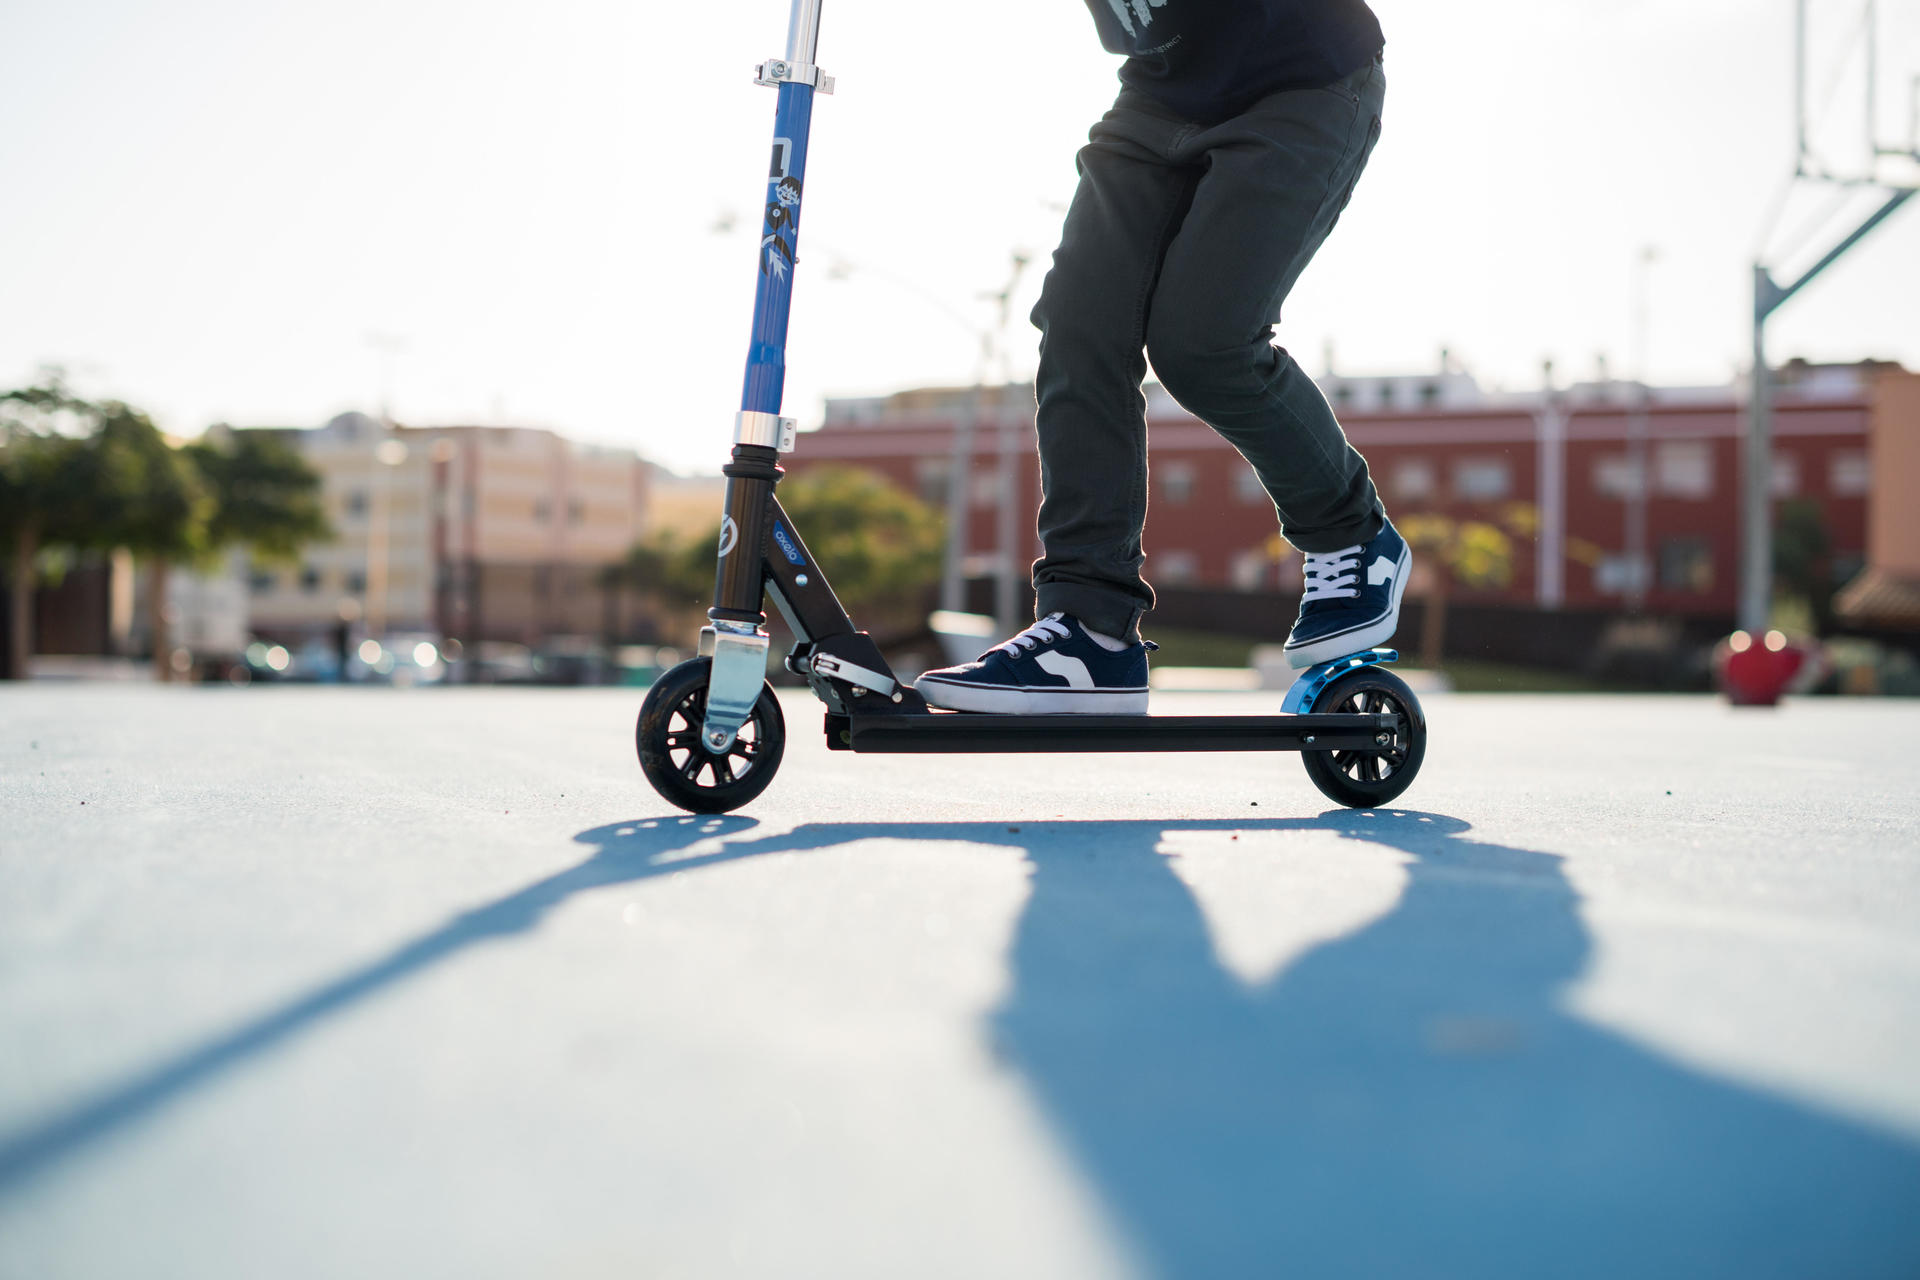 Simple Rules For Scooting In The Skate Park